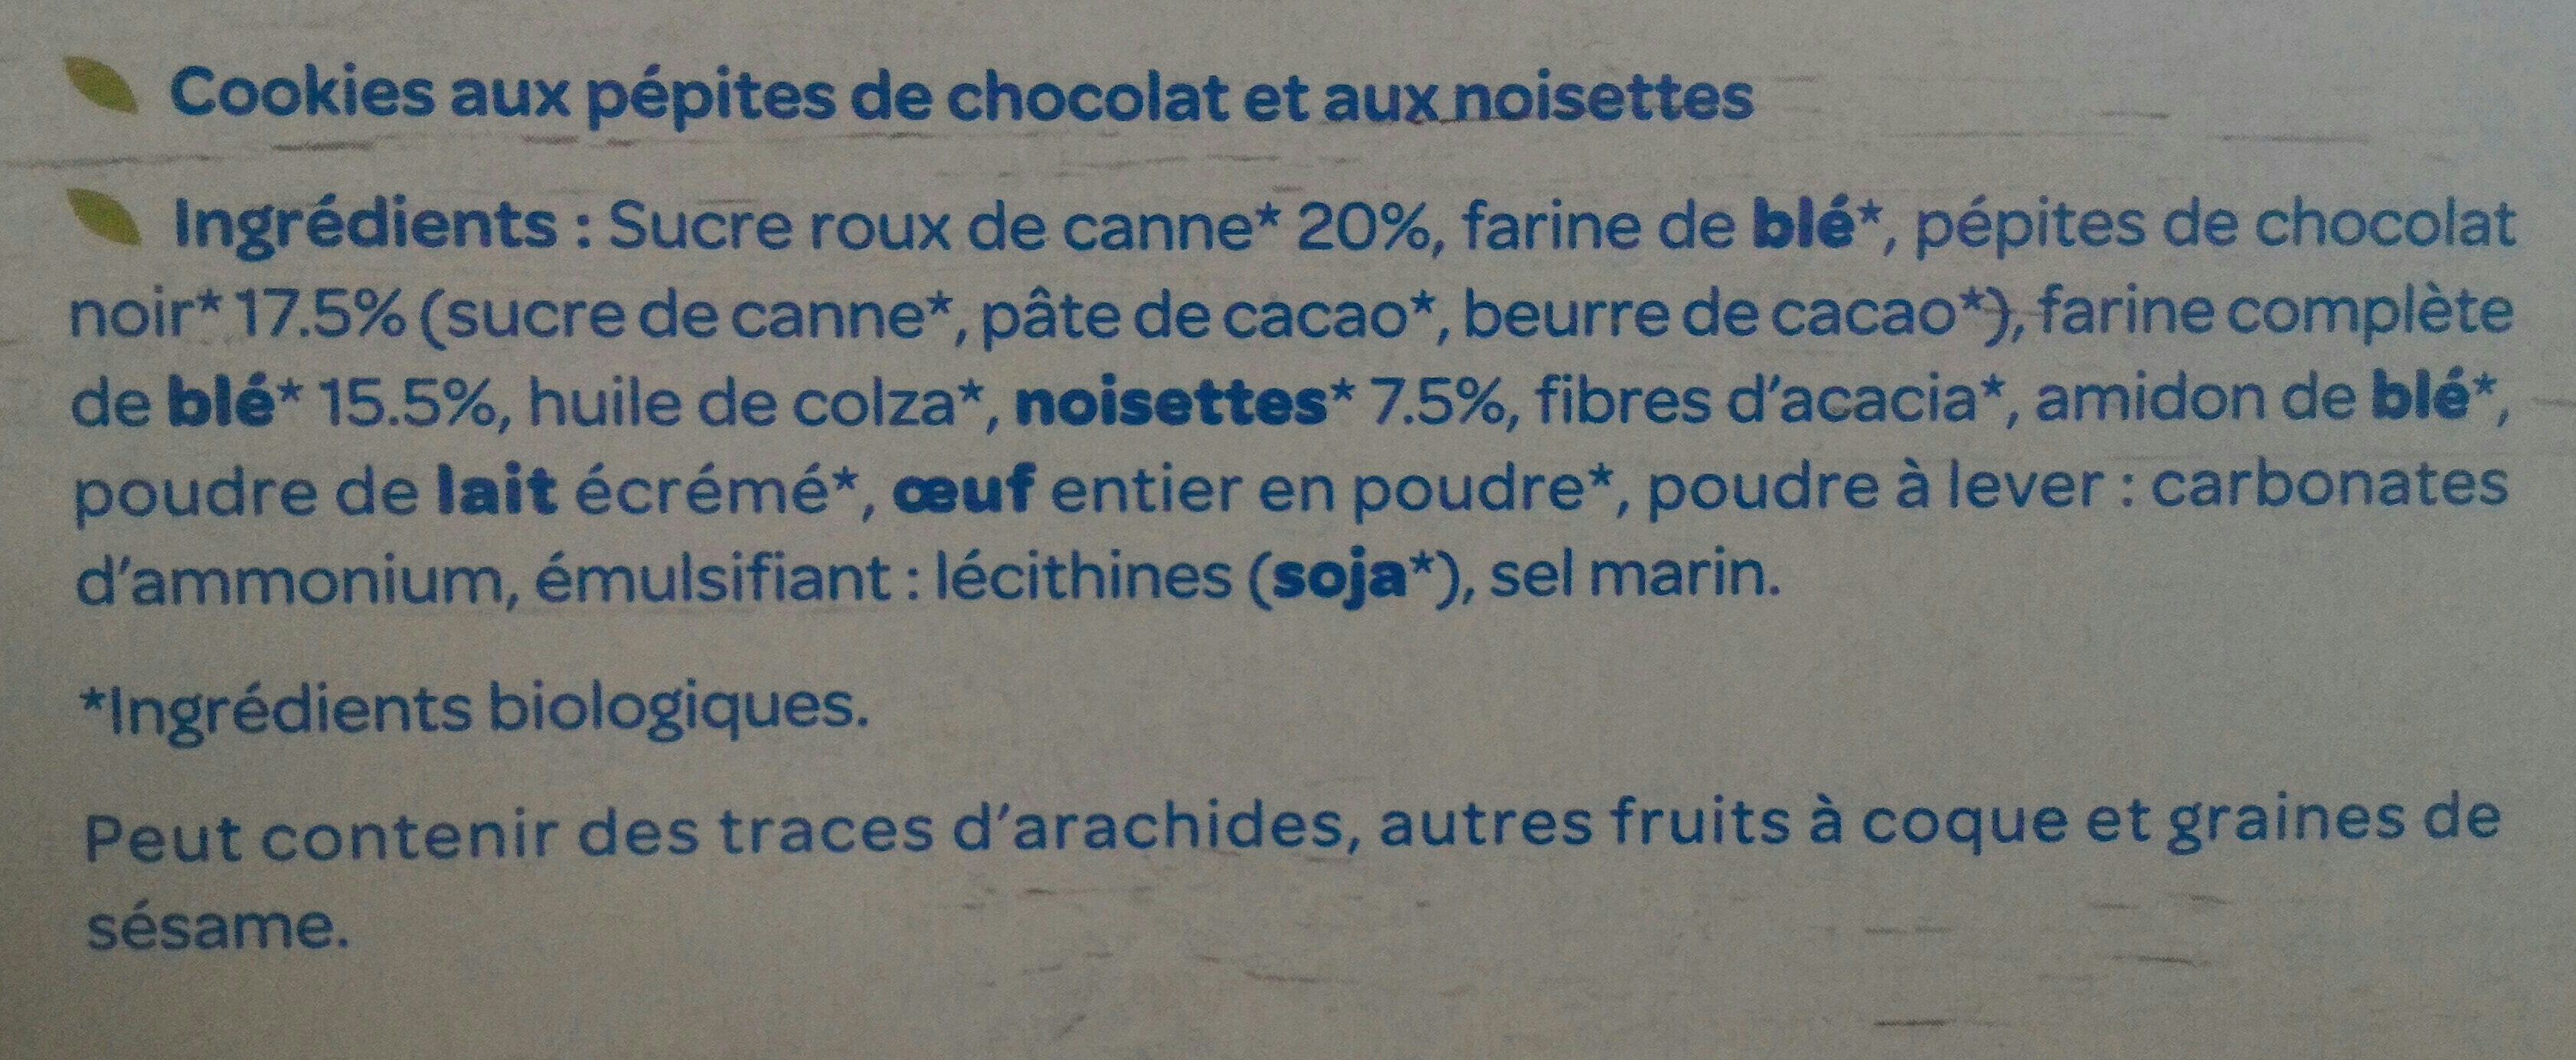 Le cookie chocolat noisettes - Ingredients